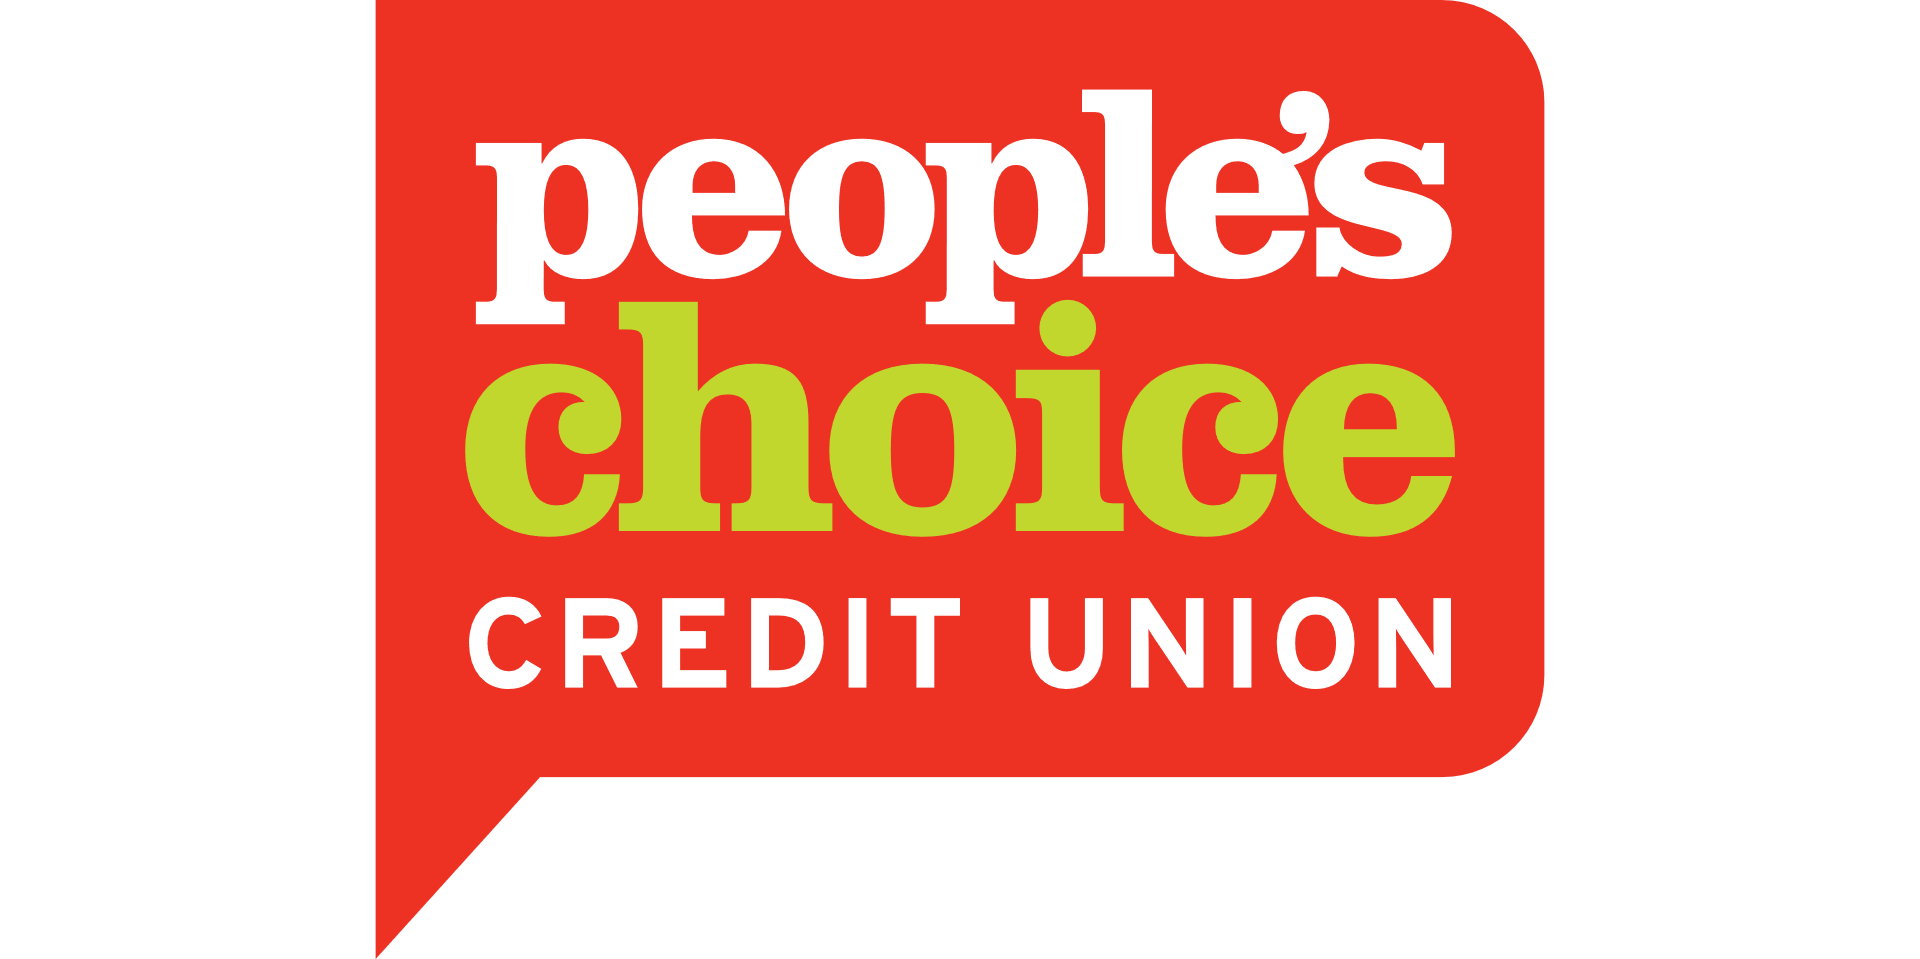 People's Choice Credit Union - West Lakes, SA 5021 - (01) 3118 1182 | ShowMeLocal.com